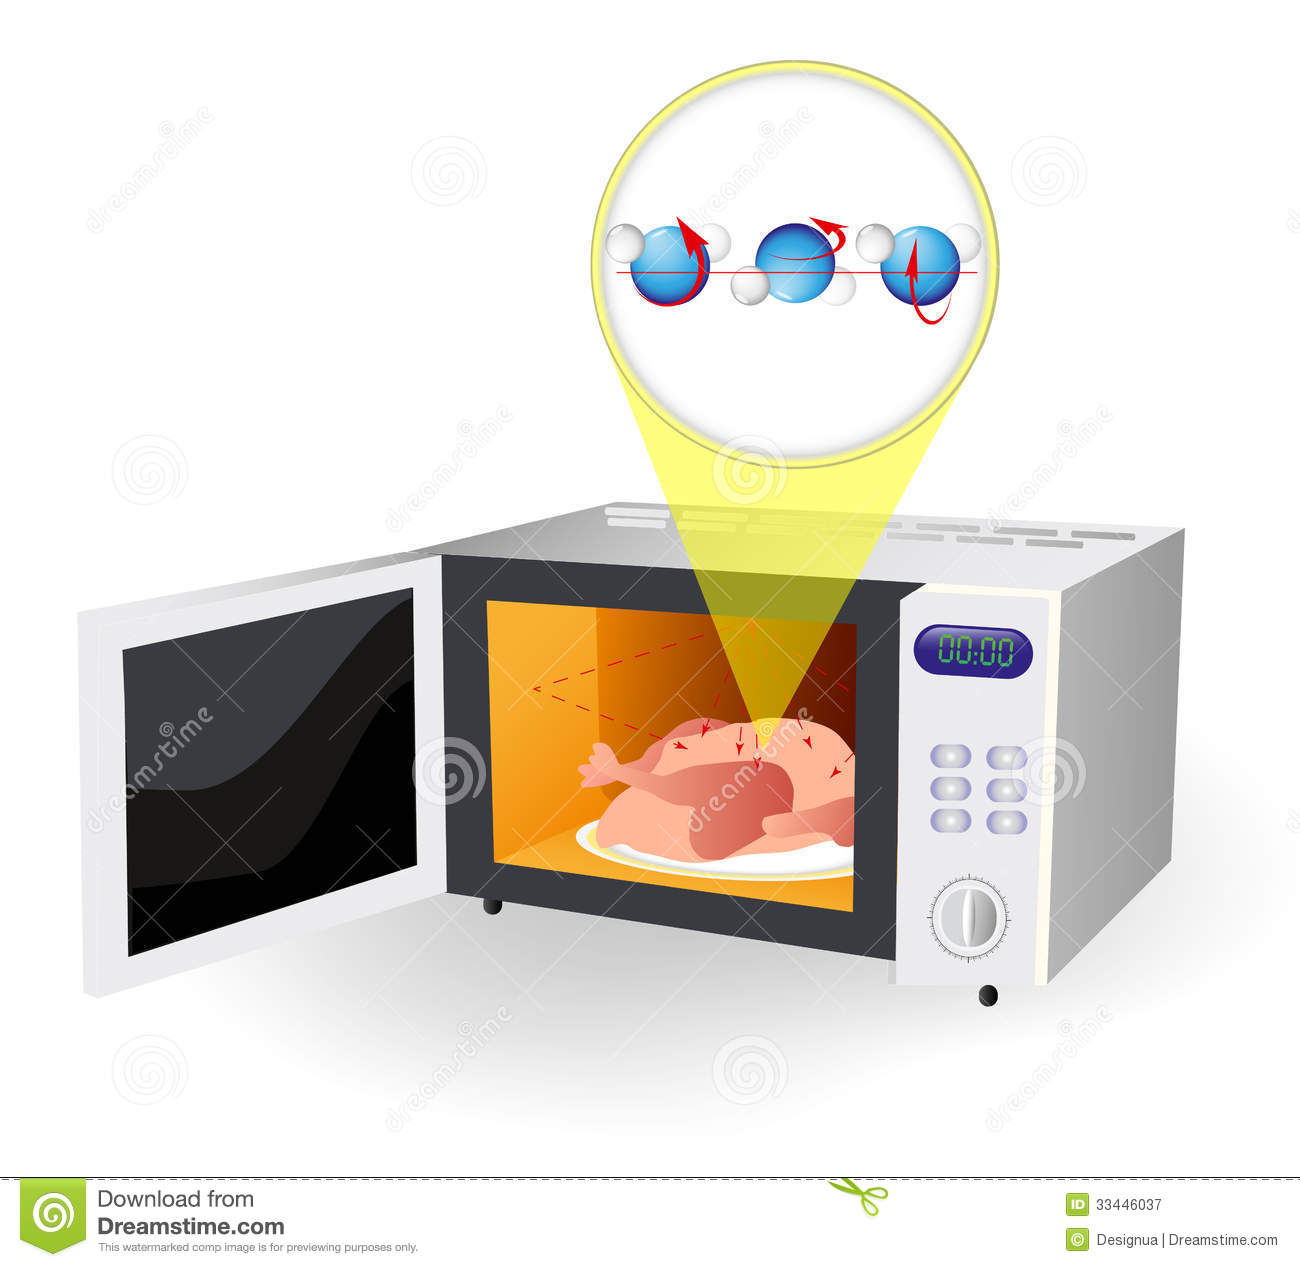 how to detect microwave radiation